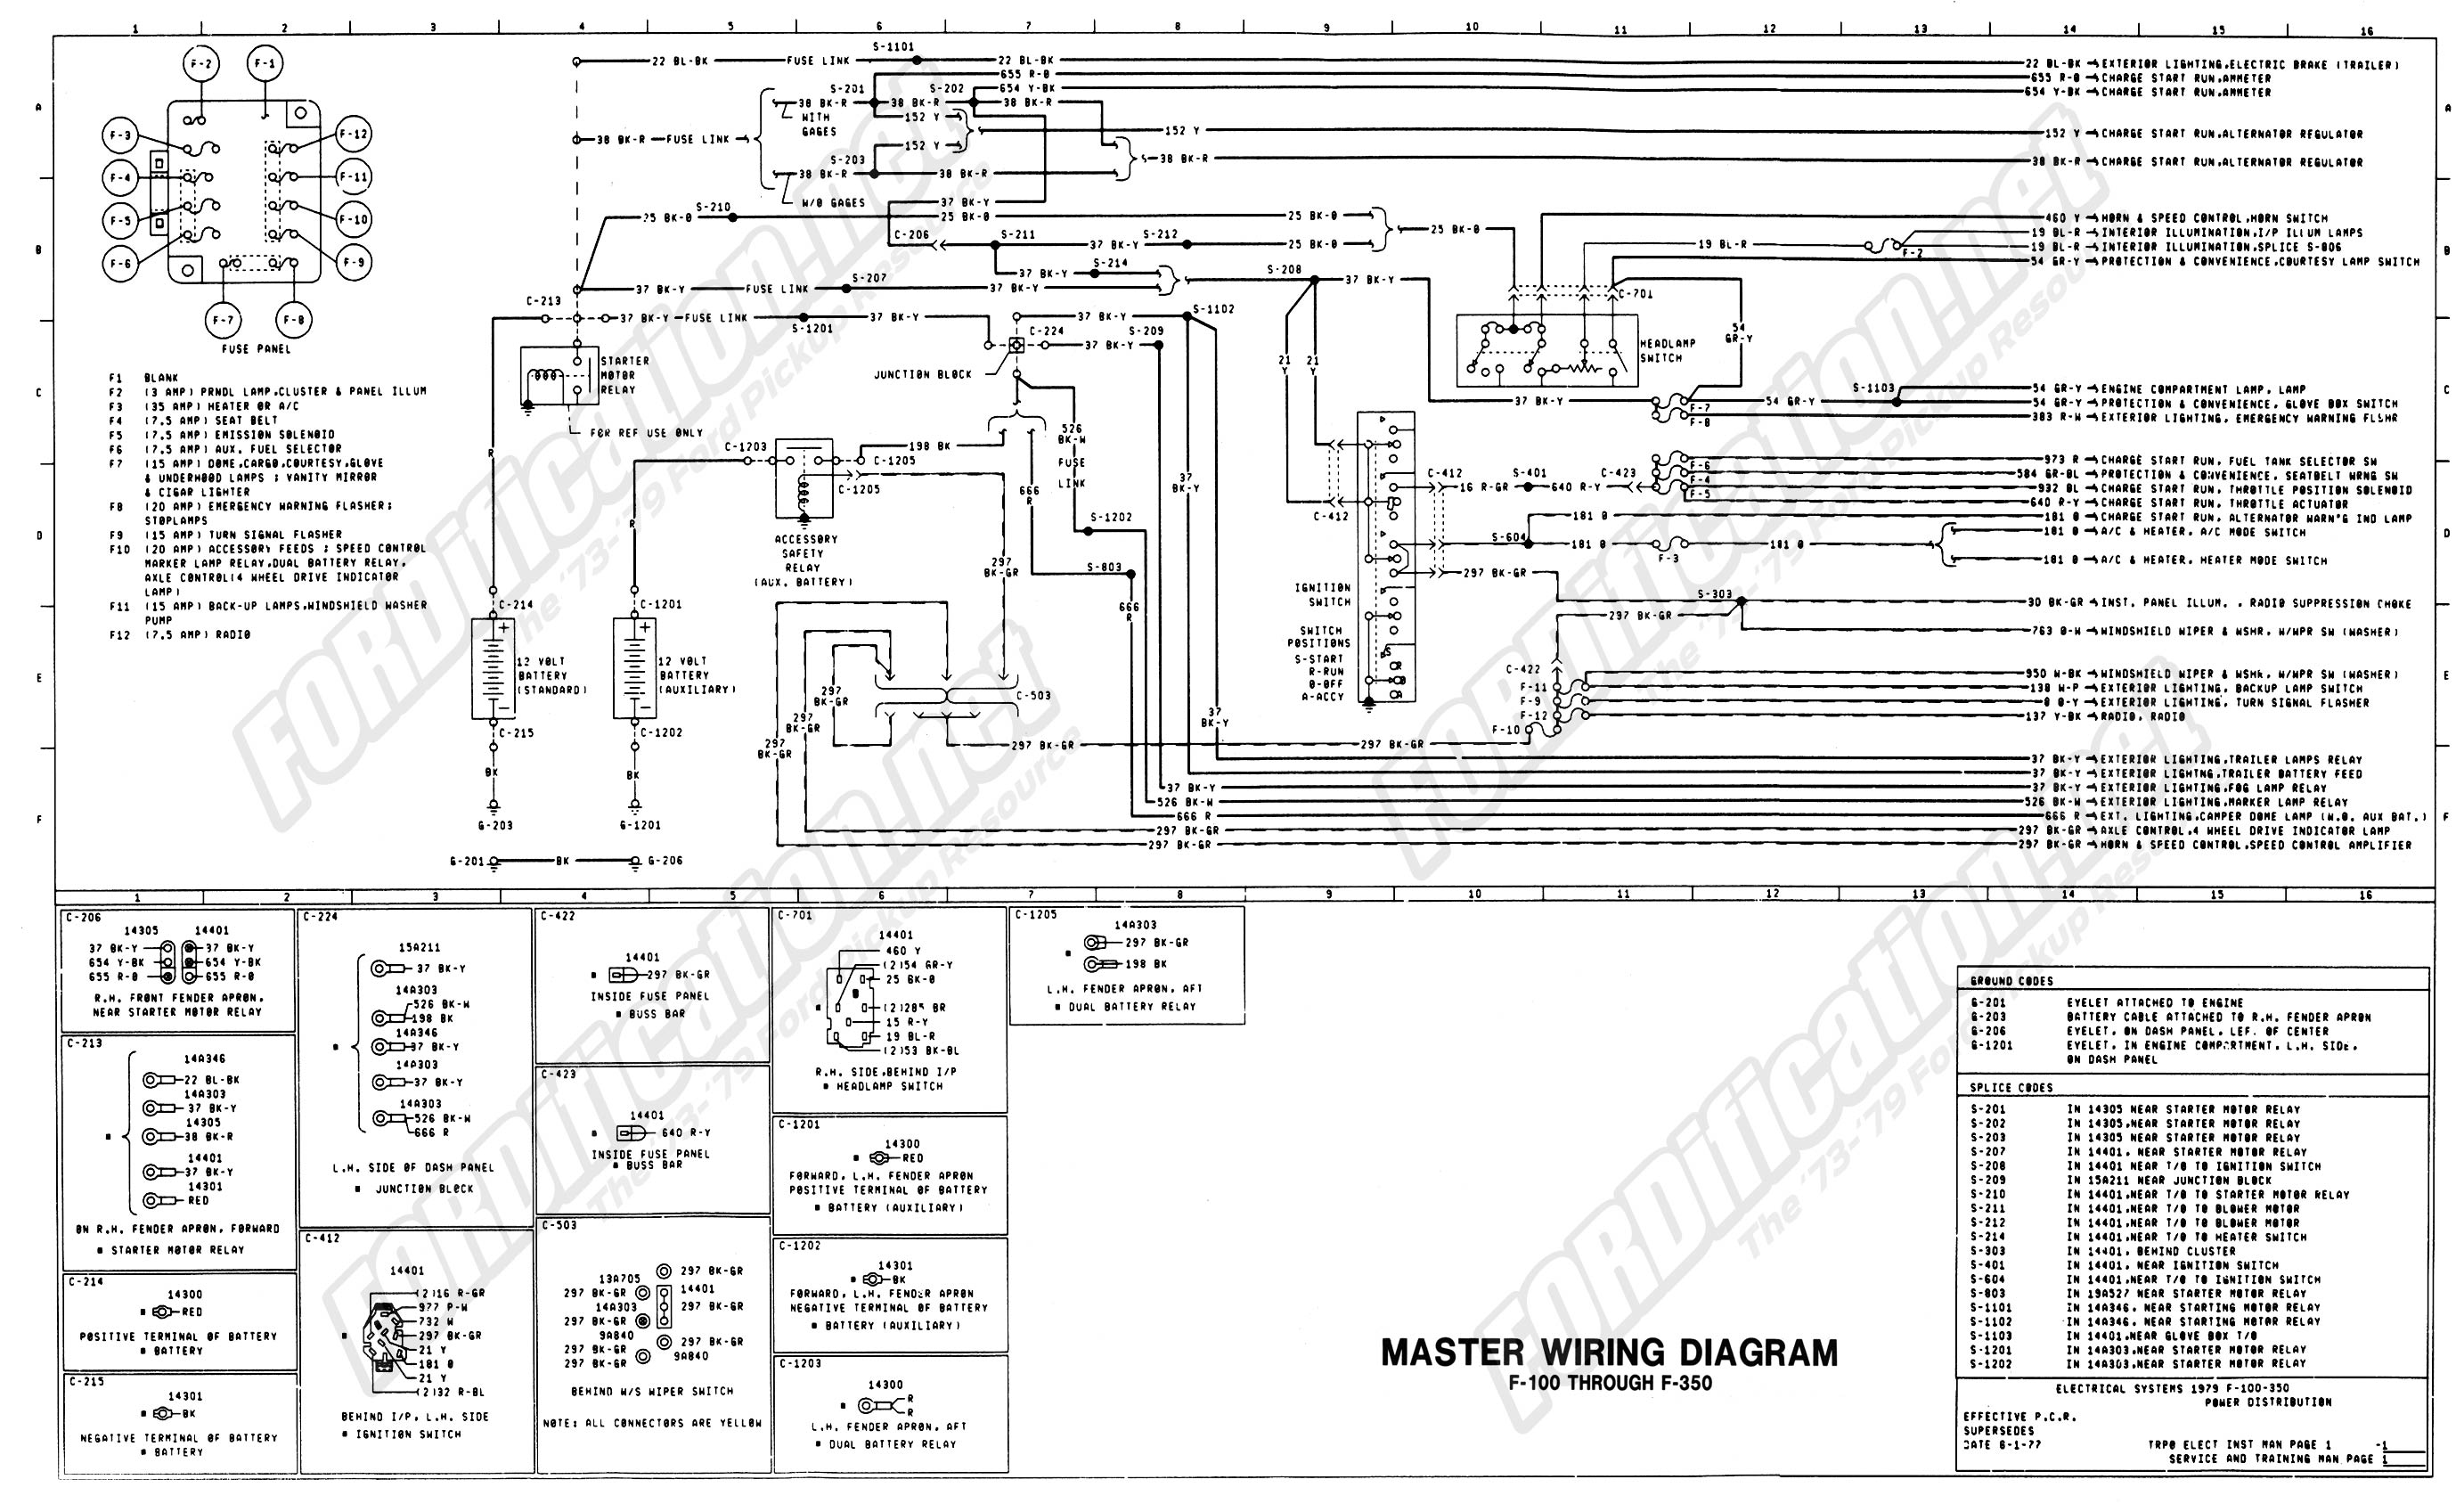 2002 sterling fuse box diagram